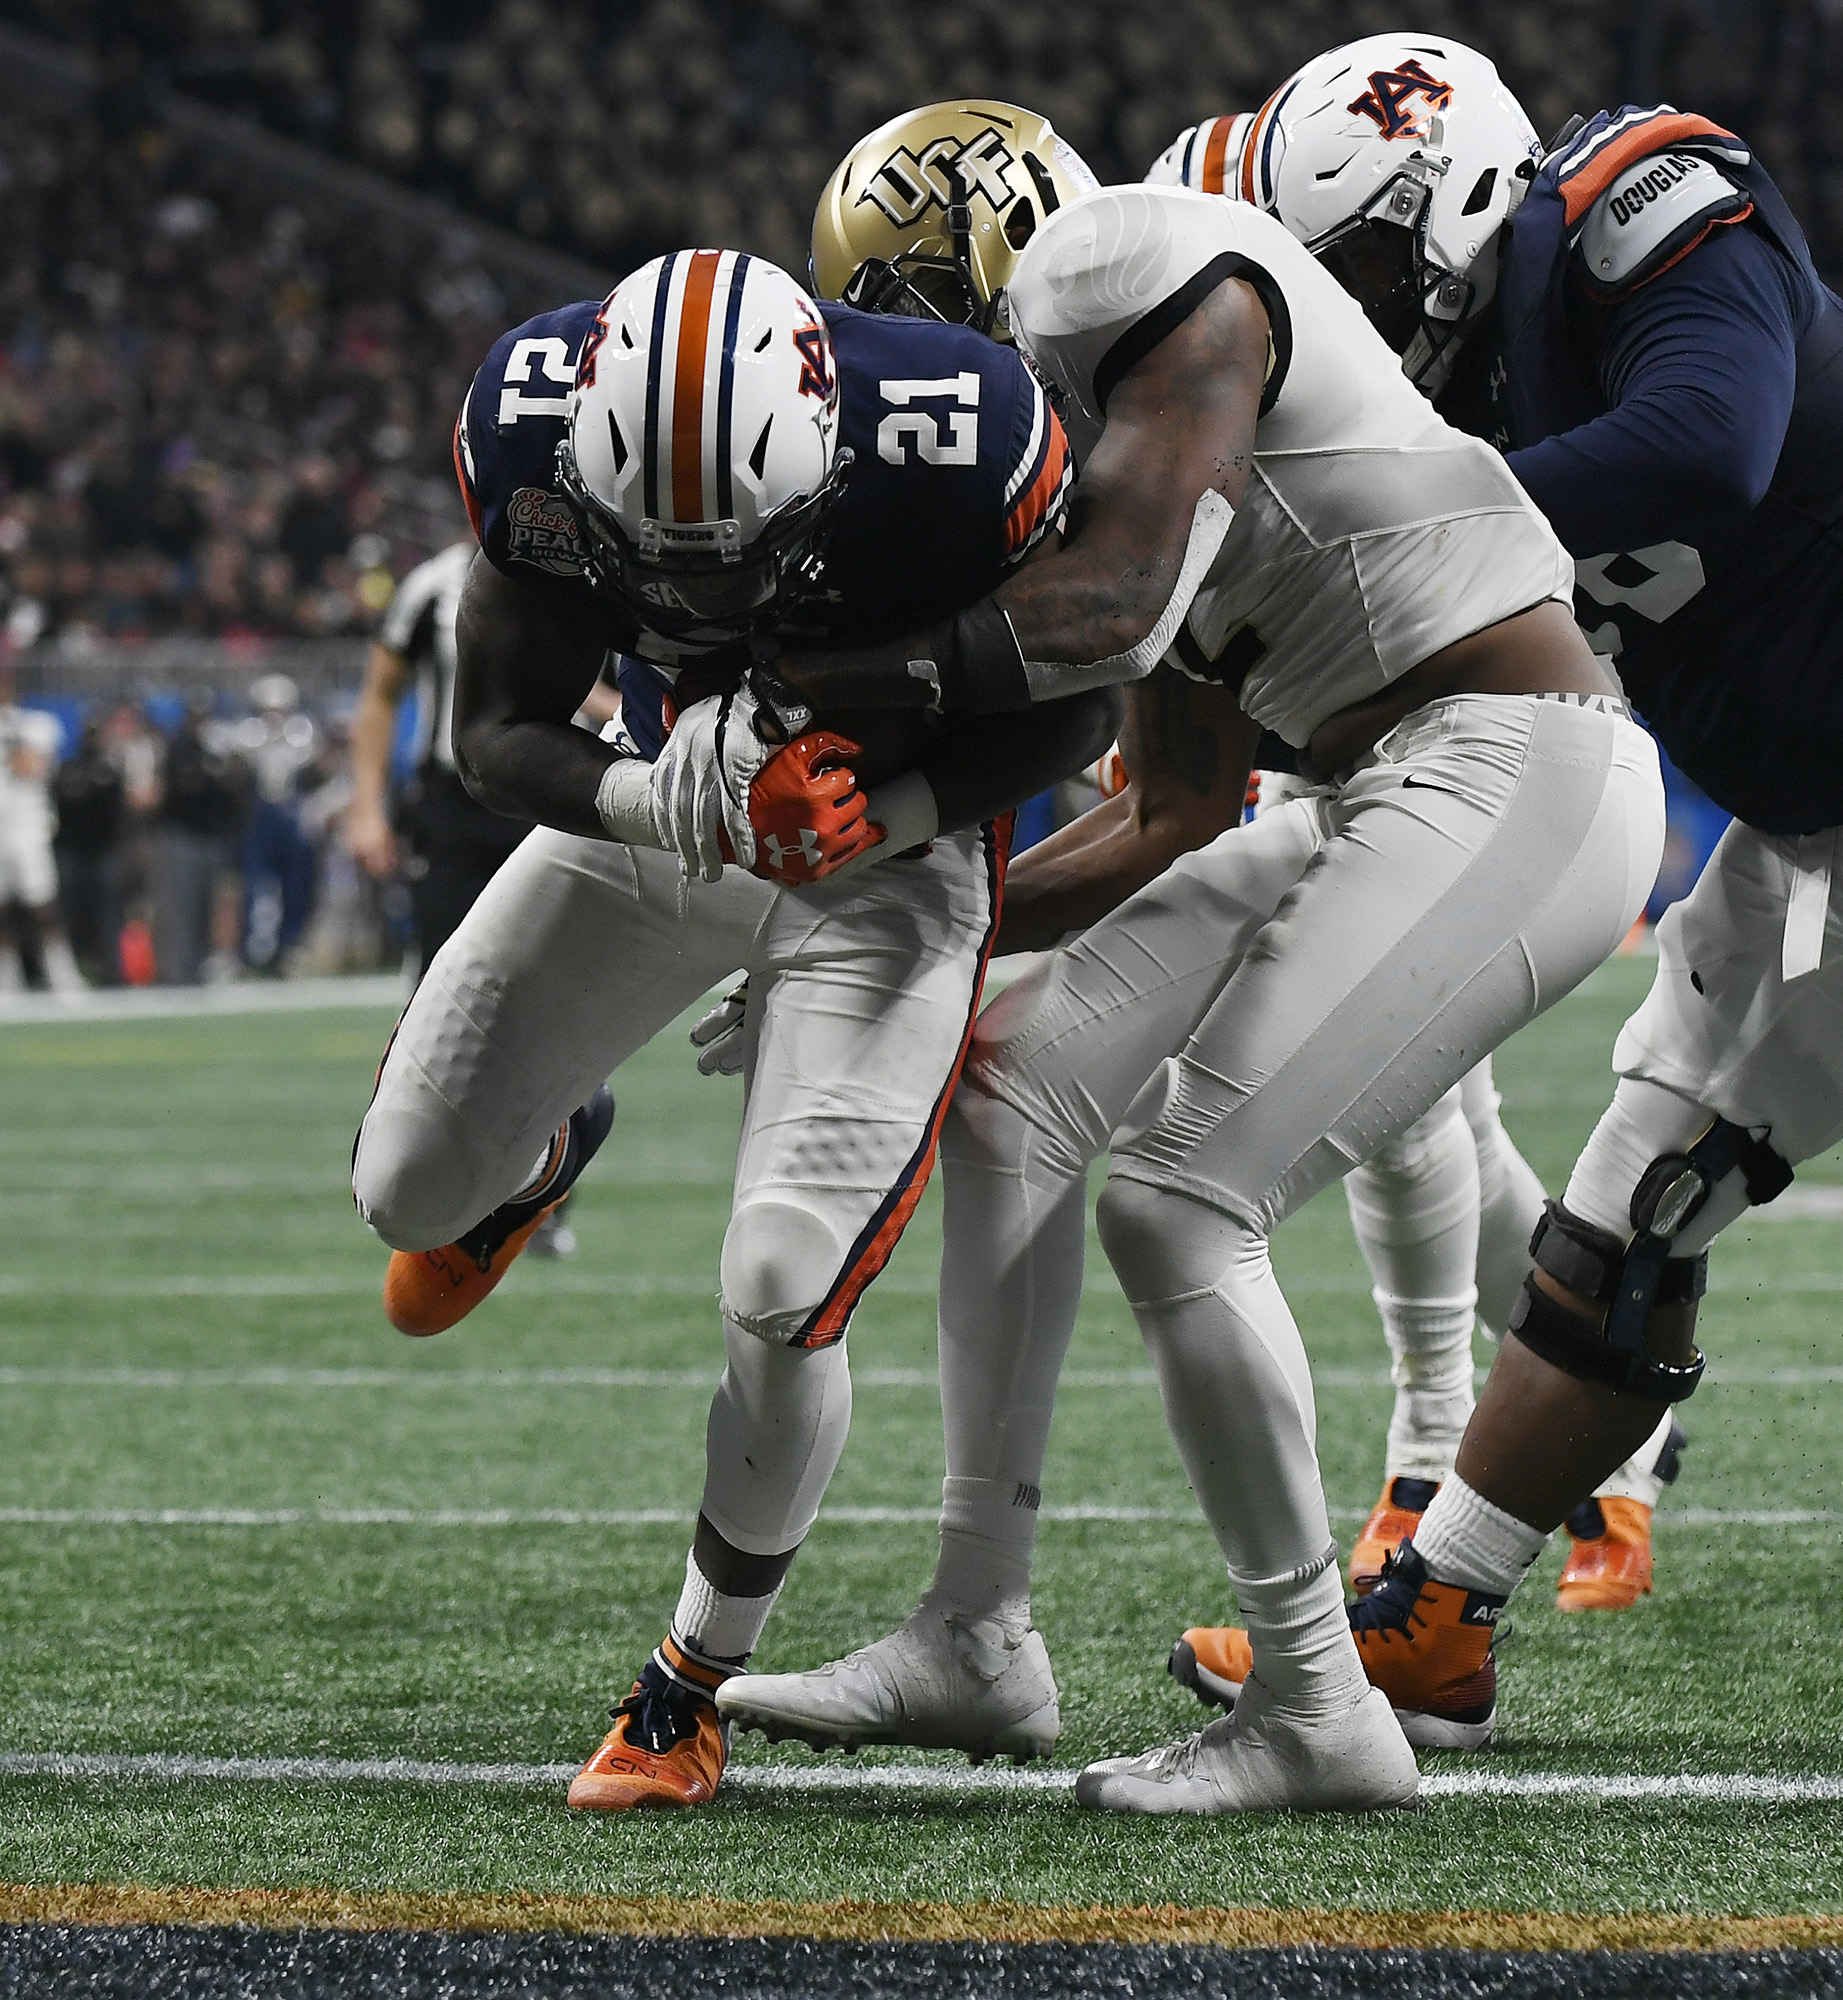 Tigers focused on themselves heading into Peach Bowl